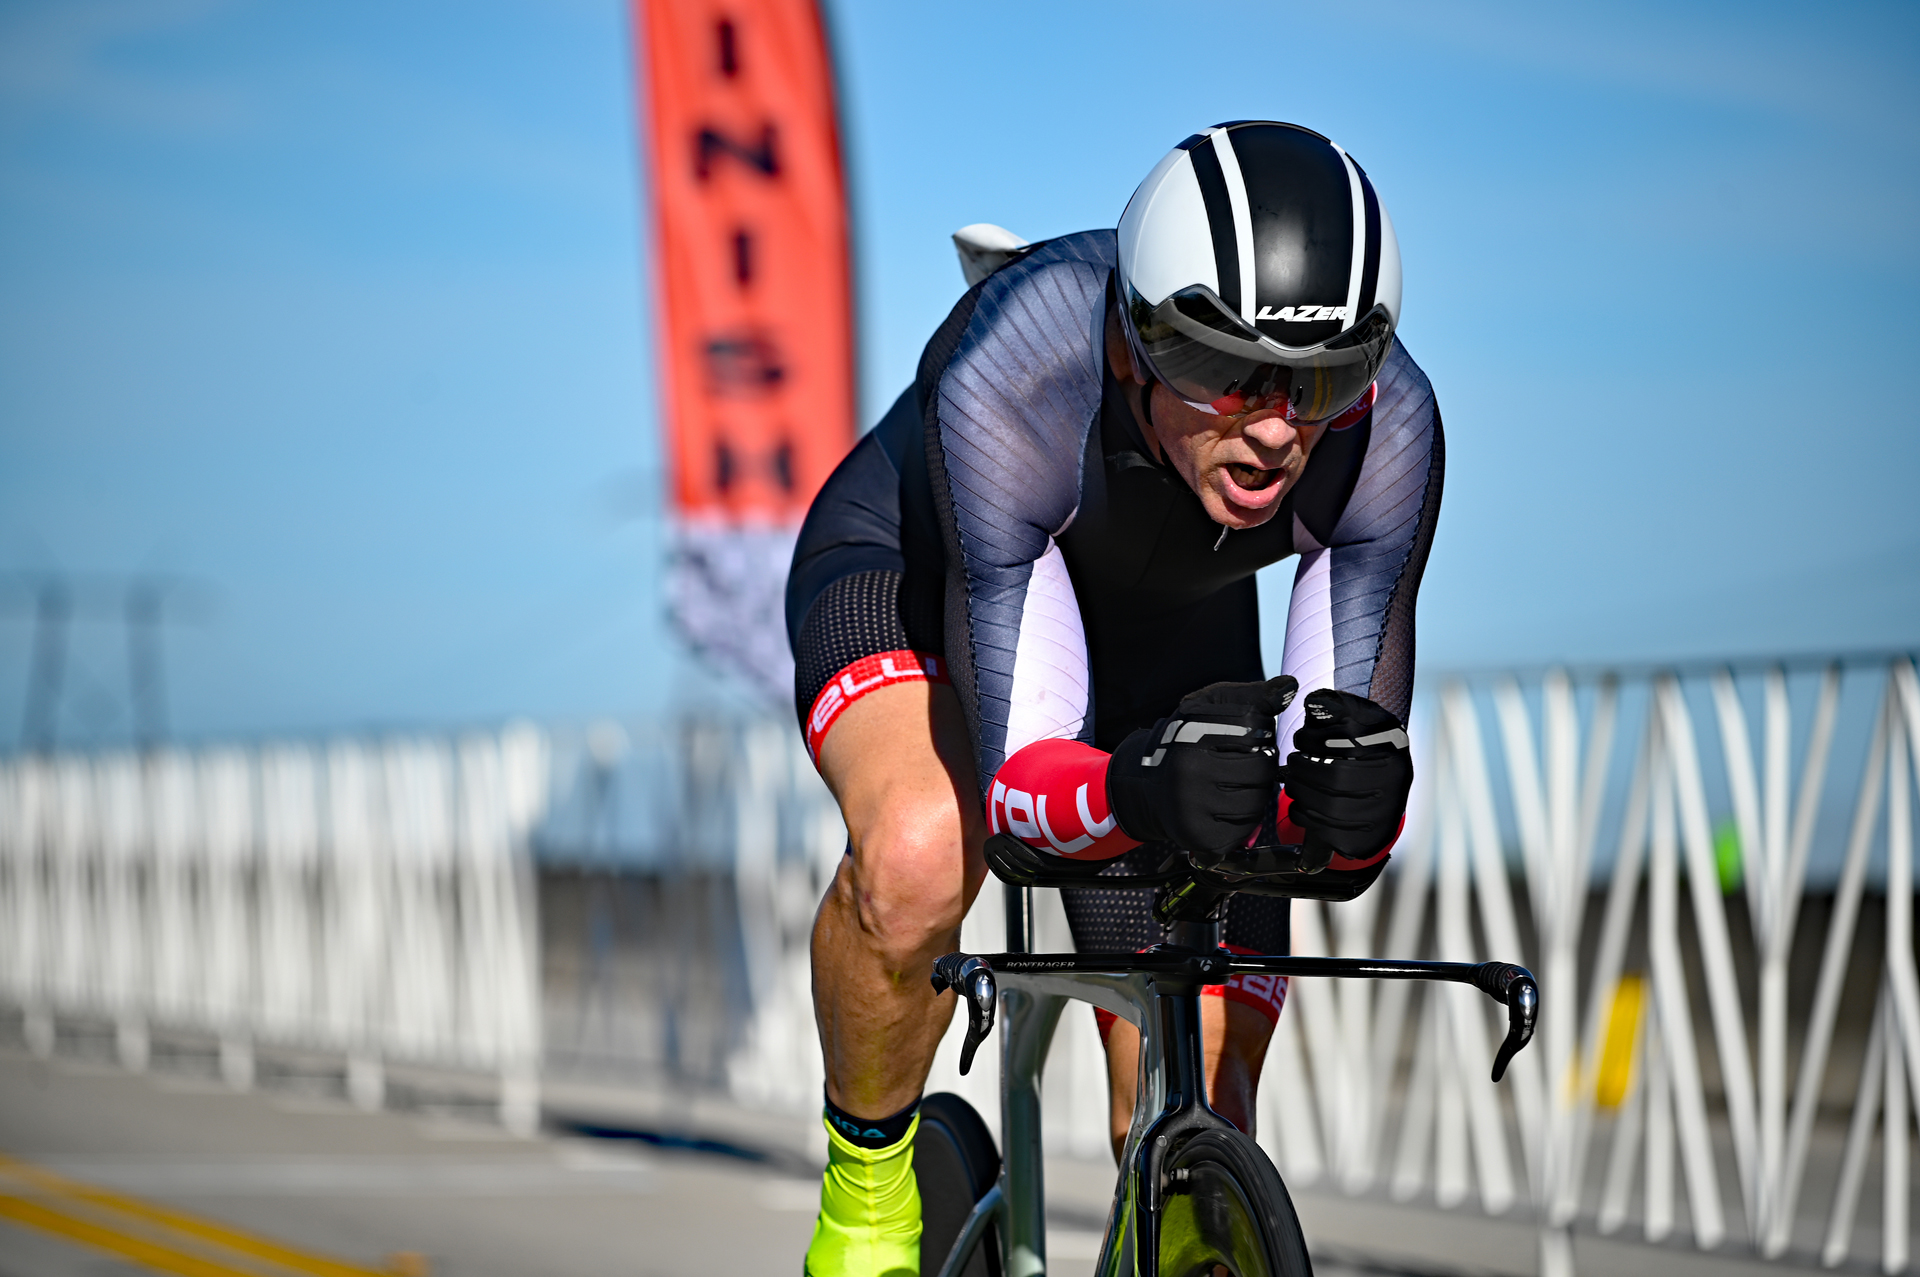 time-trial-racer-finish-line-velopista-photo-sports-photographer